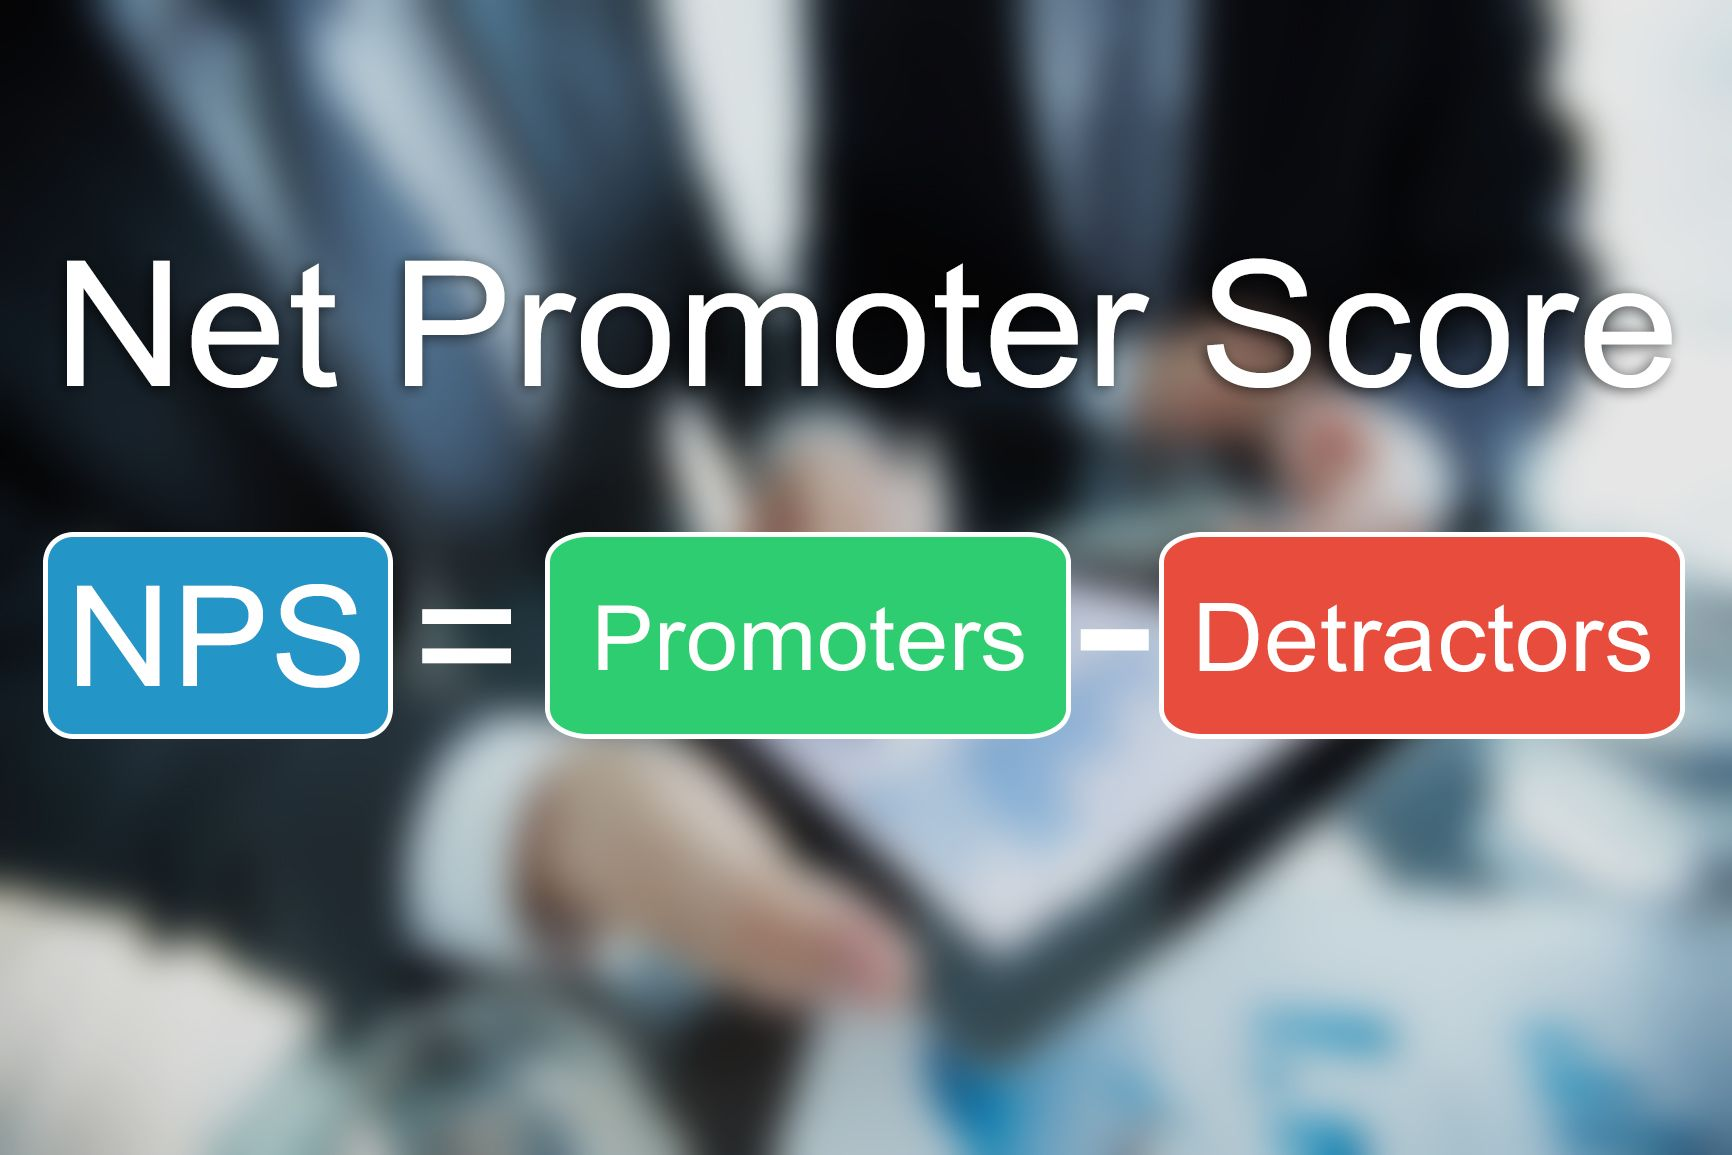 Examplecg Launches Net Promoter Score Driven Customer Engagement